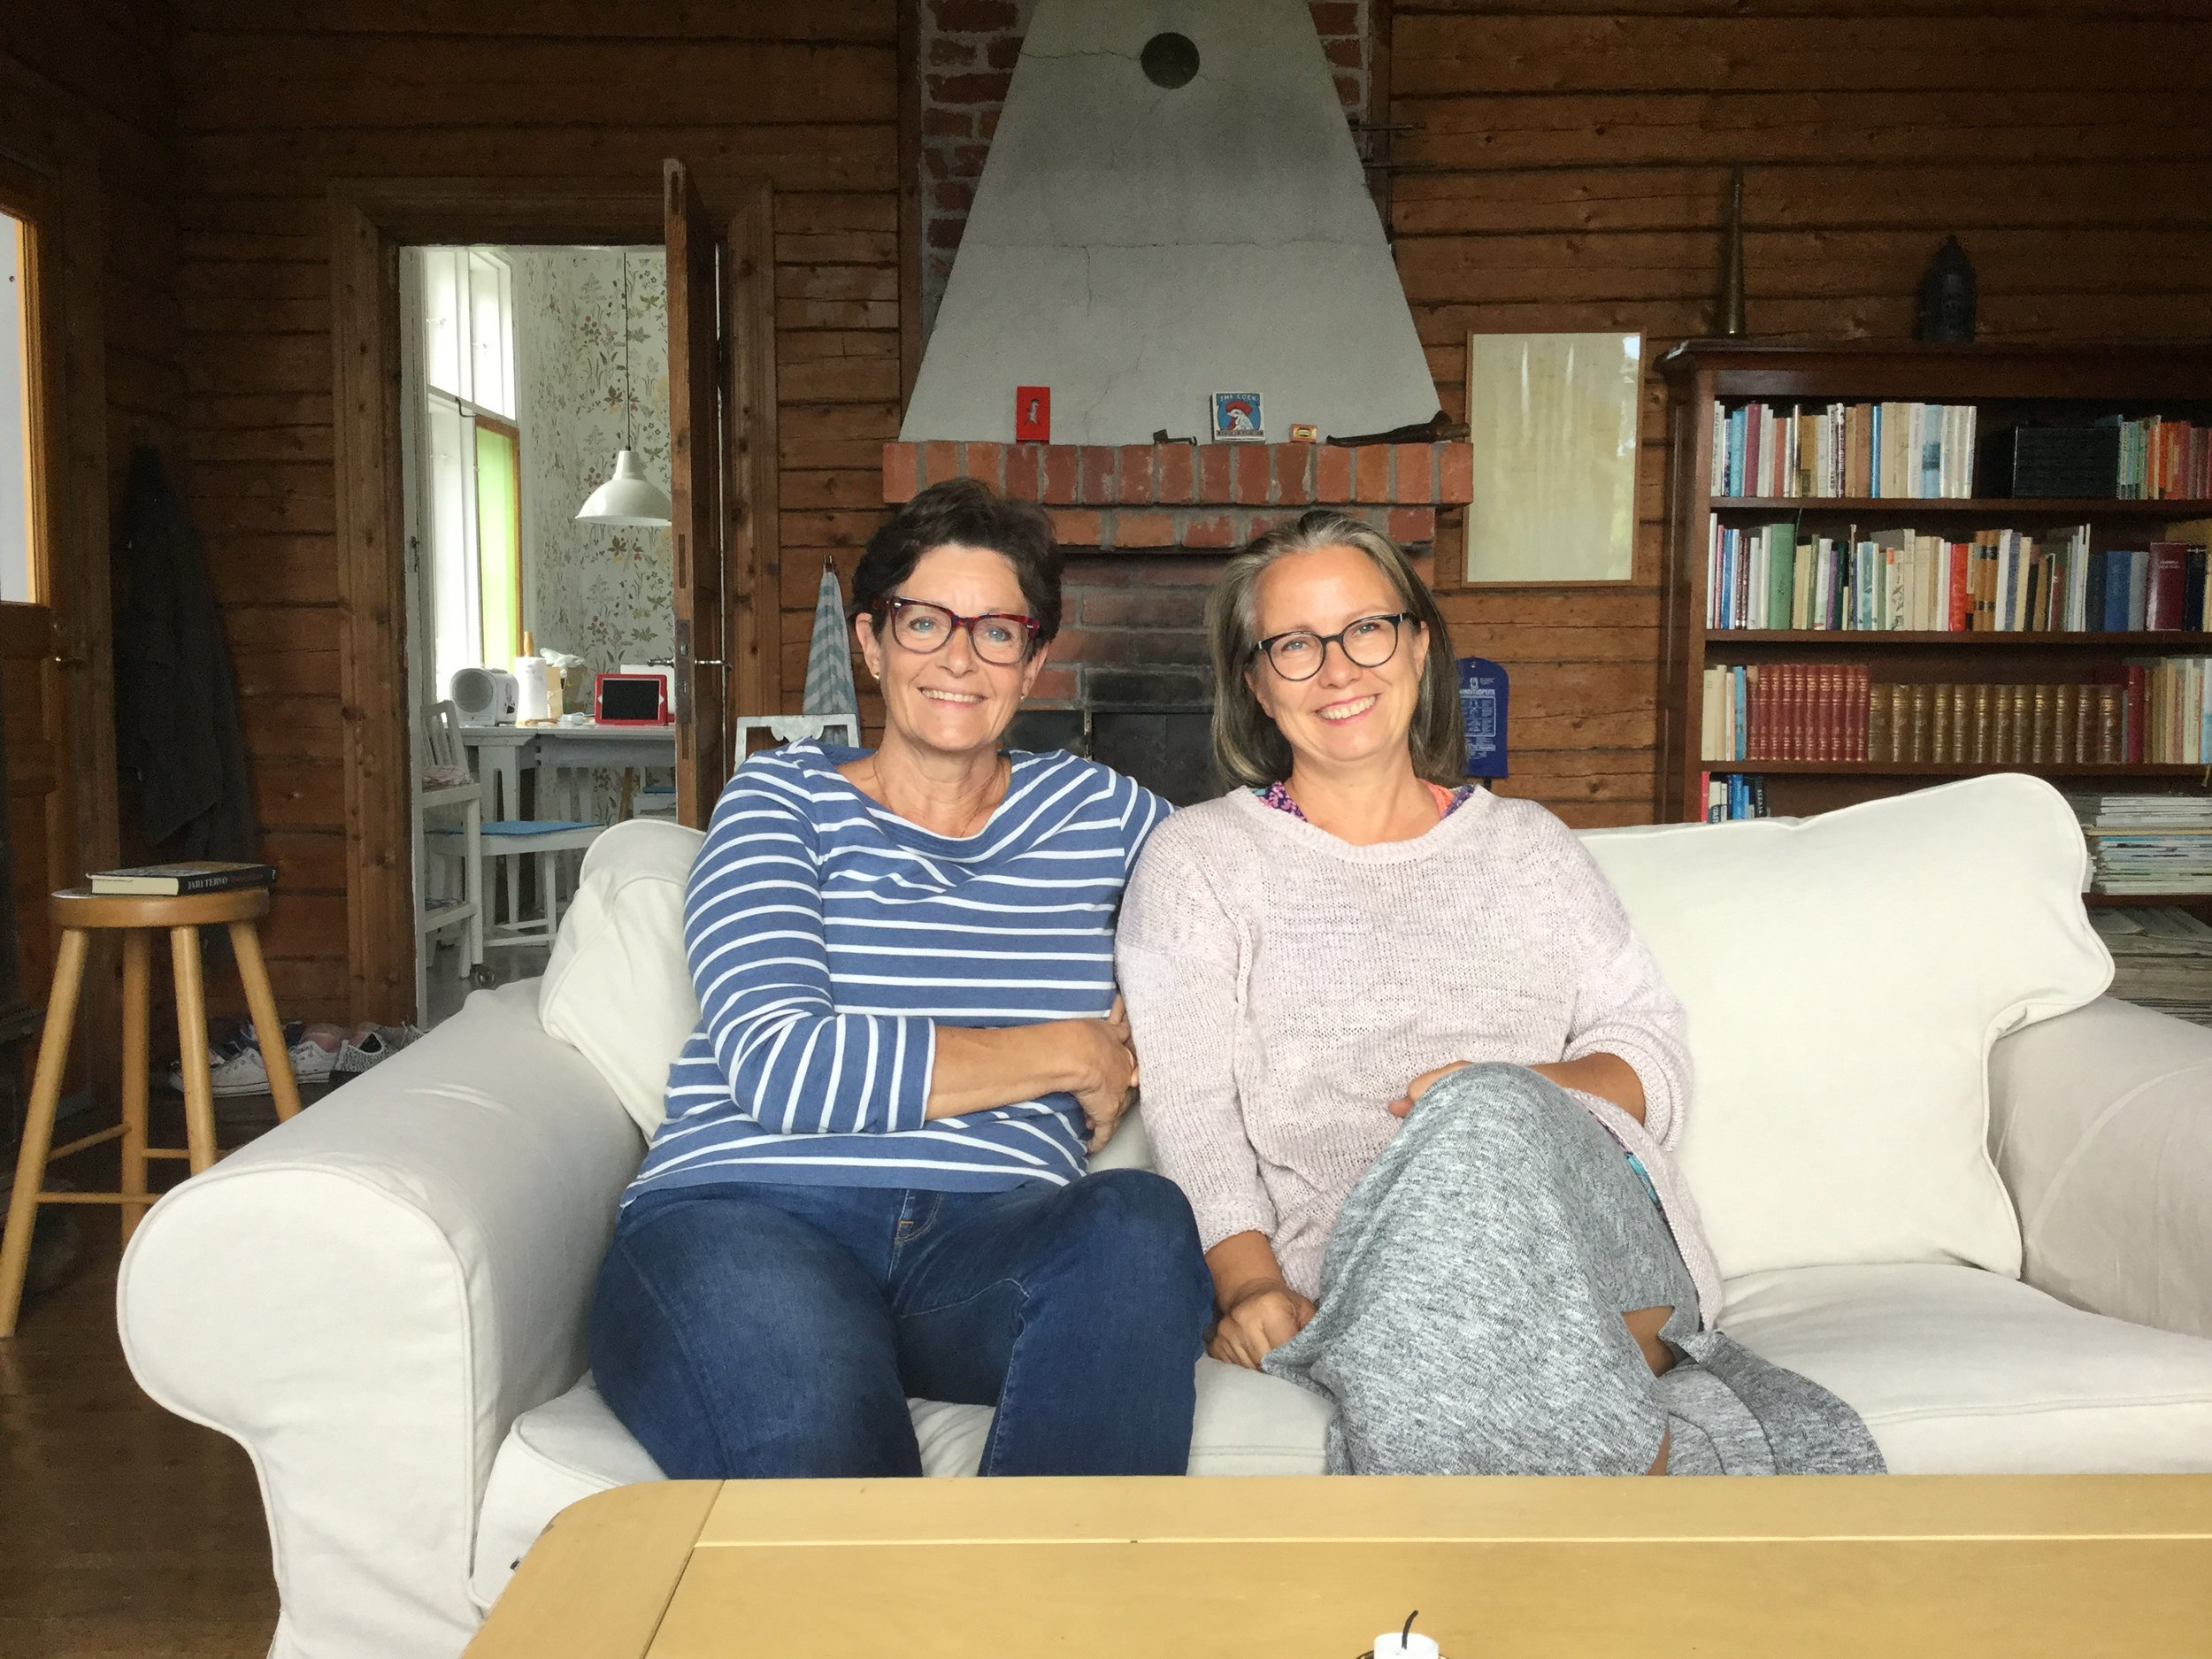 Me and Tove at her wonderful summer home in Vessö.